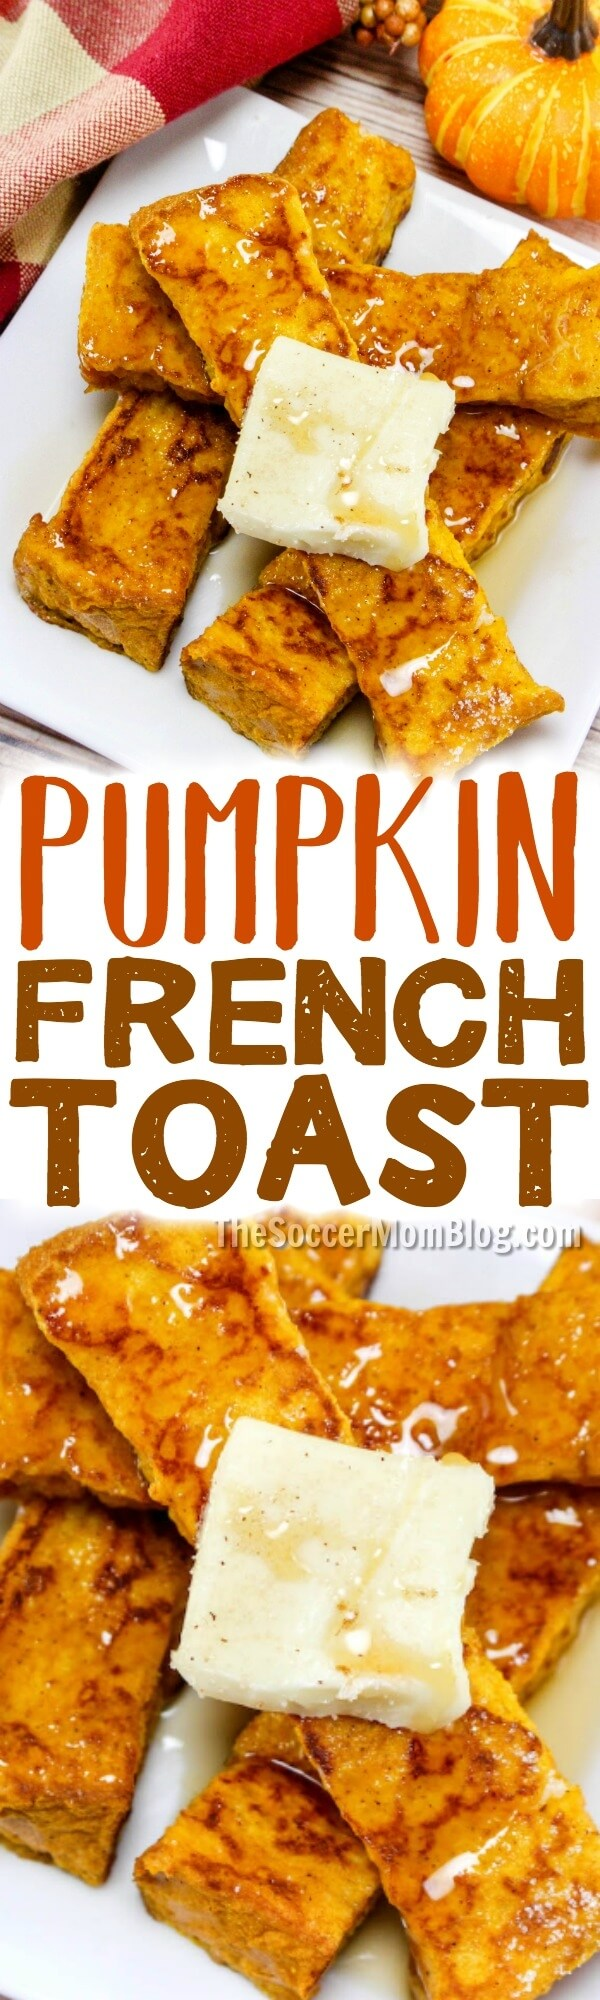 Easy Fall breakfast recipe - Pumpkin French Toast Sticks are our new favorite! Made with real pumpkin!